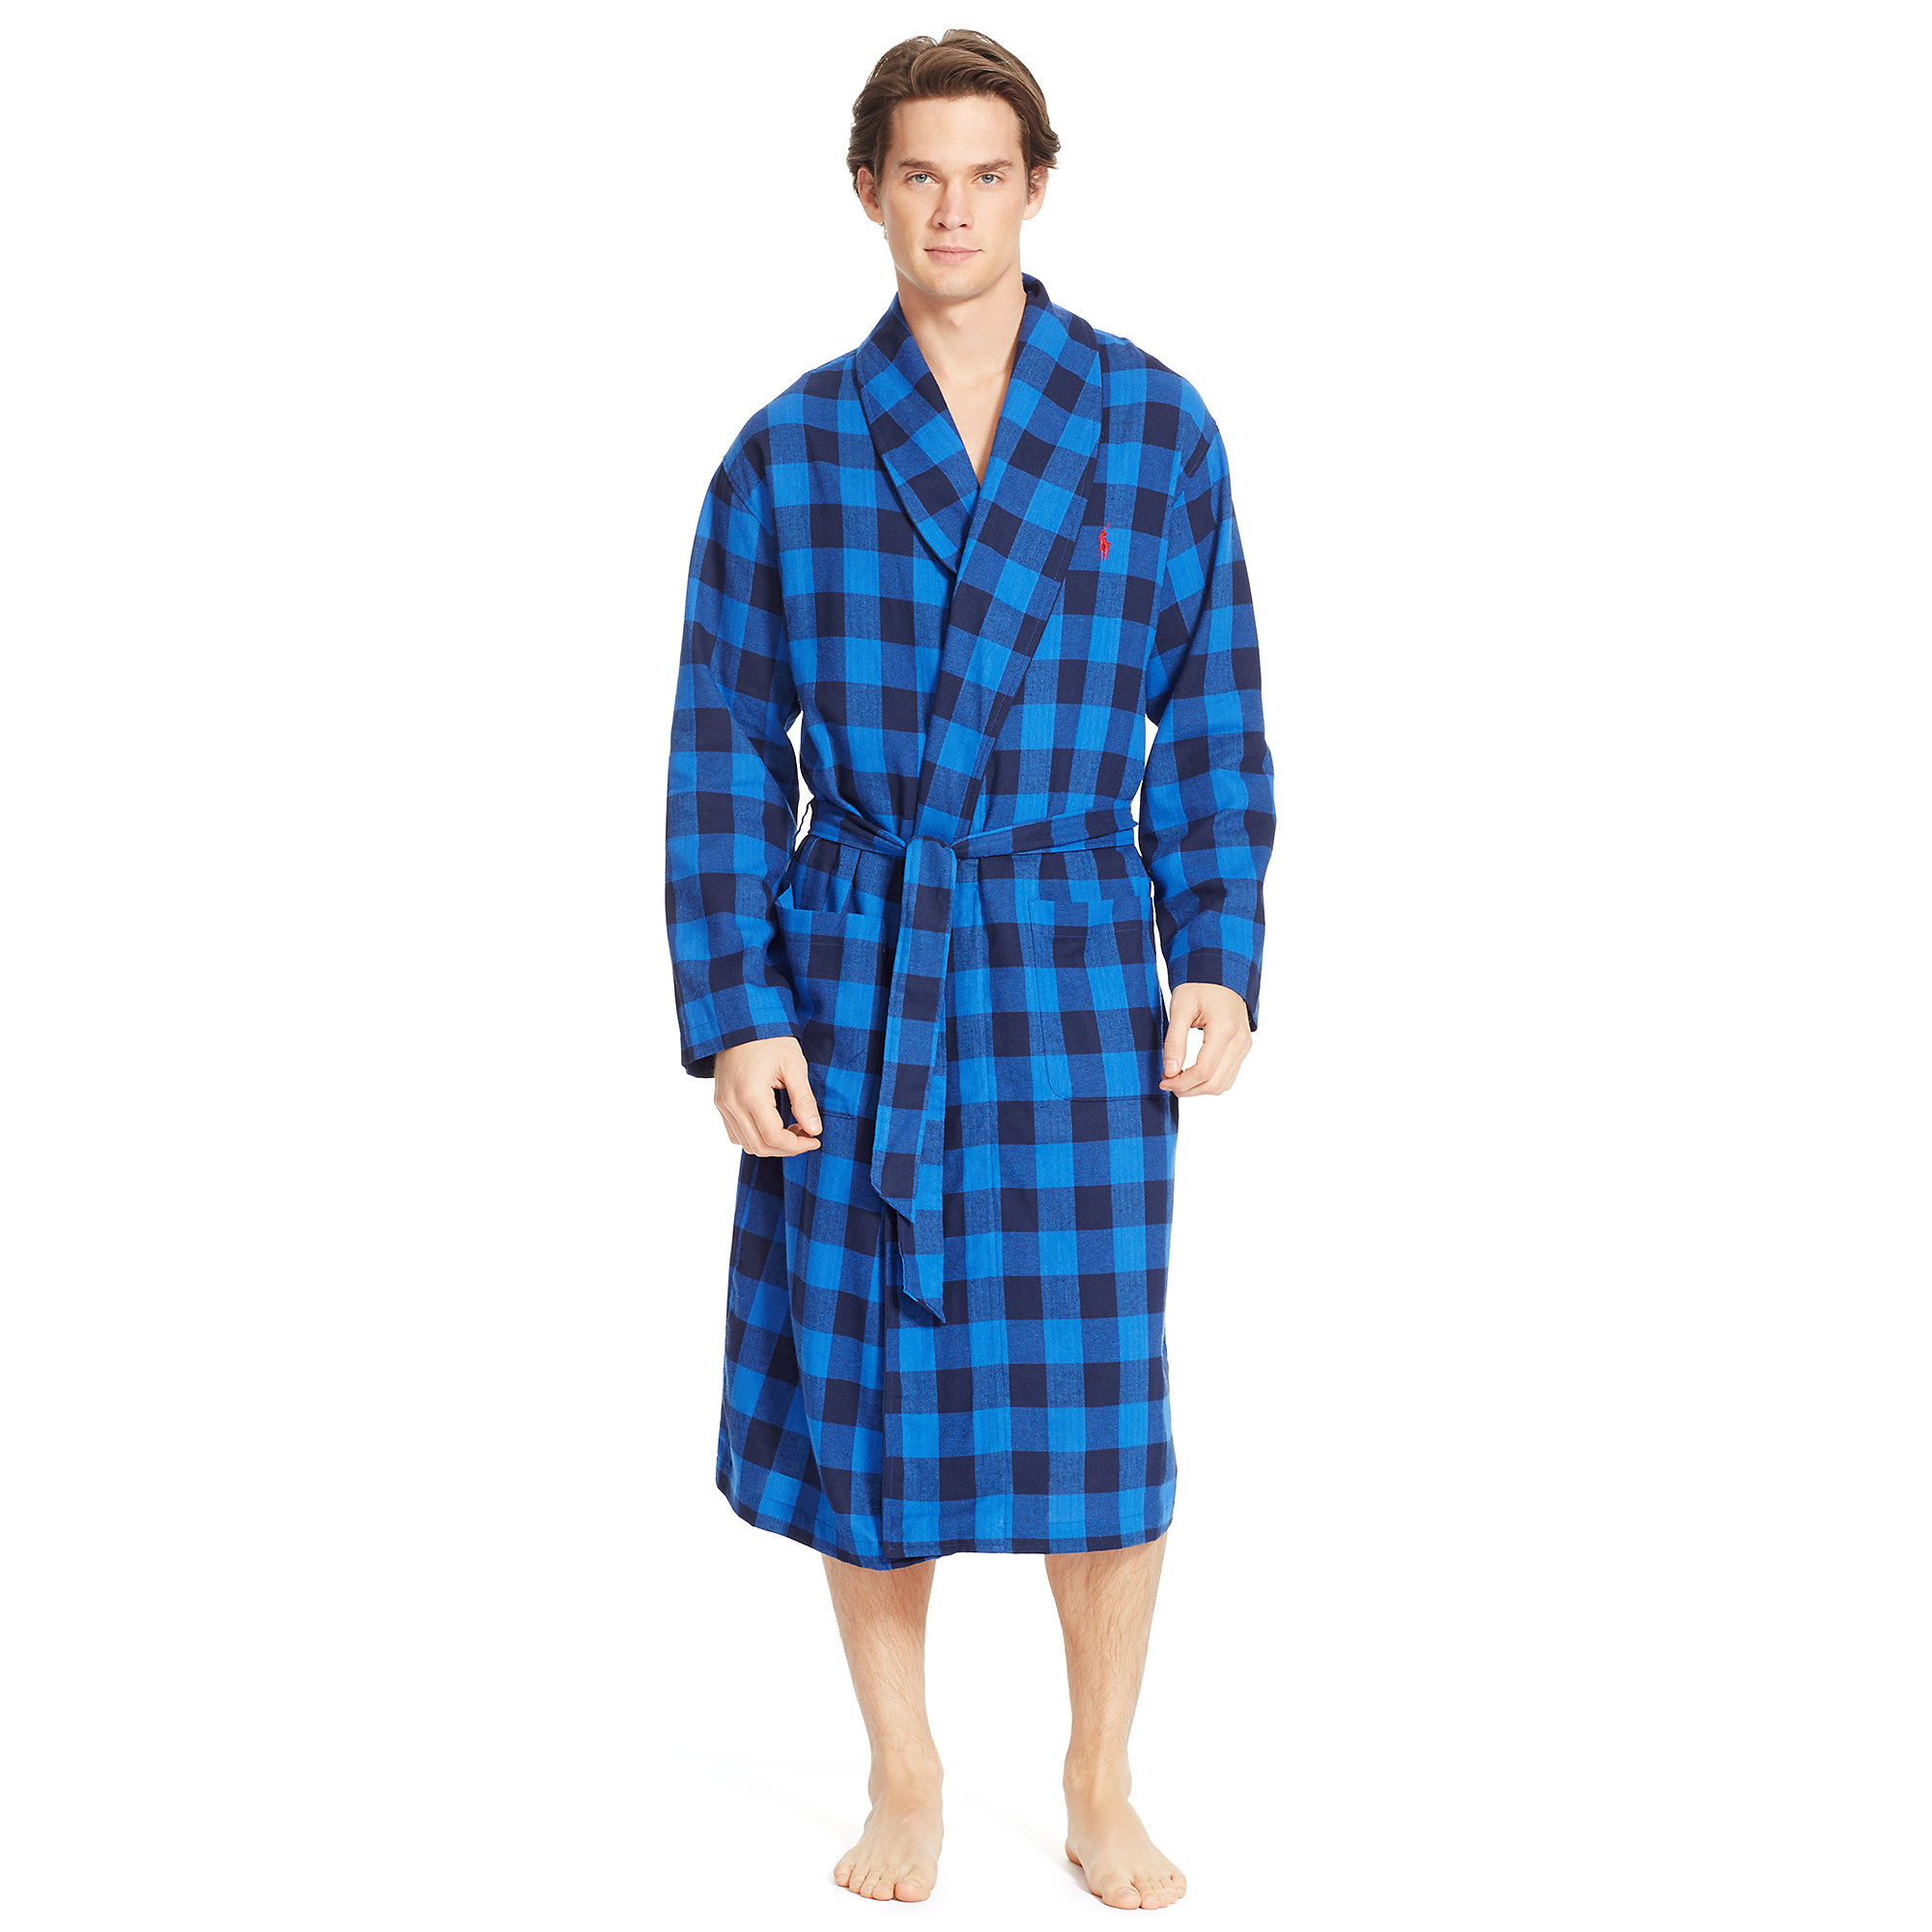 Lyst - Polo Ralph Lauren Dartmouth Plaid Flannel Robe in Red for Men